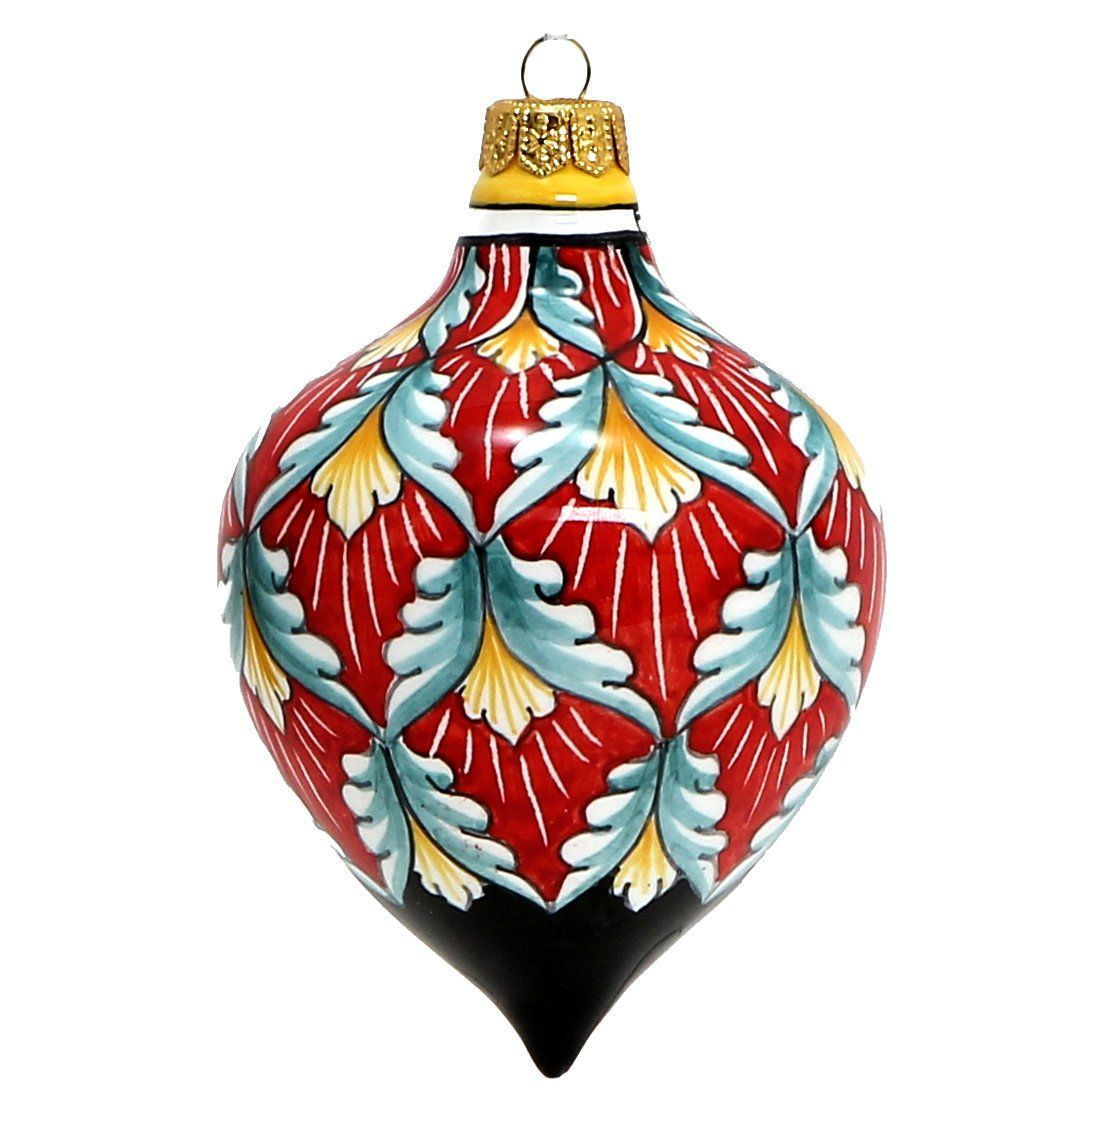 Christmas Ornament Drop Ball Hand Painted In Deruta Vario Design Large Christmas Ornaments Large Christmas Ornaments Painted Christmas Ornaments